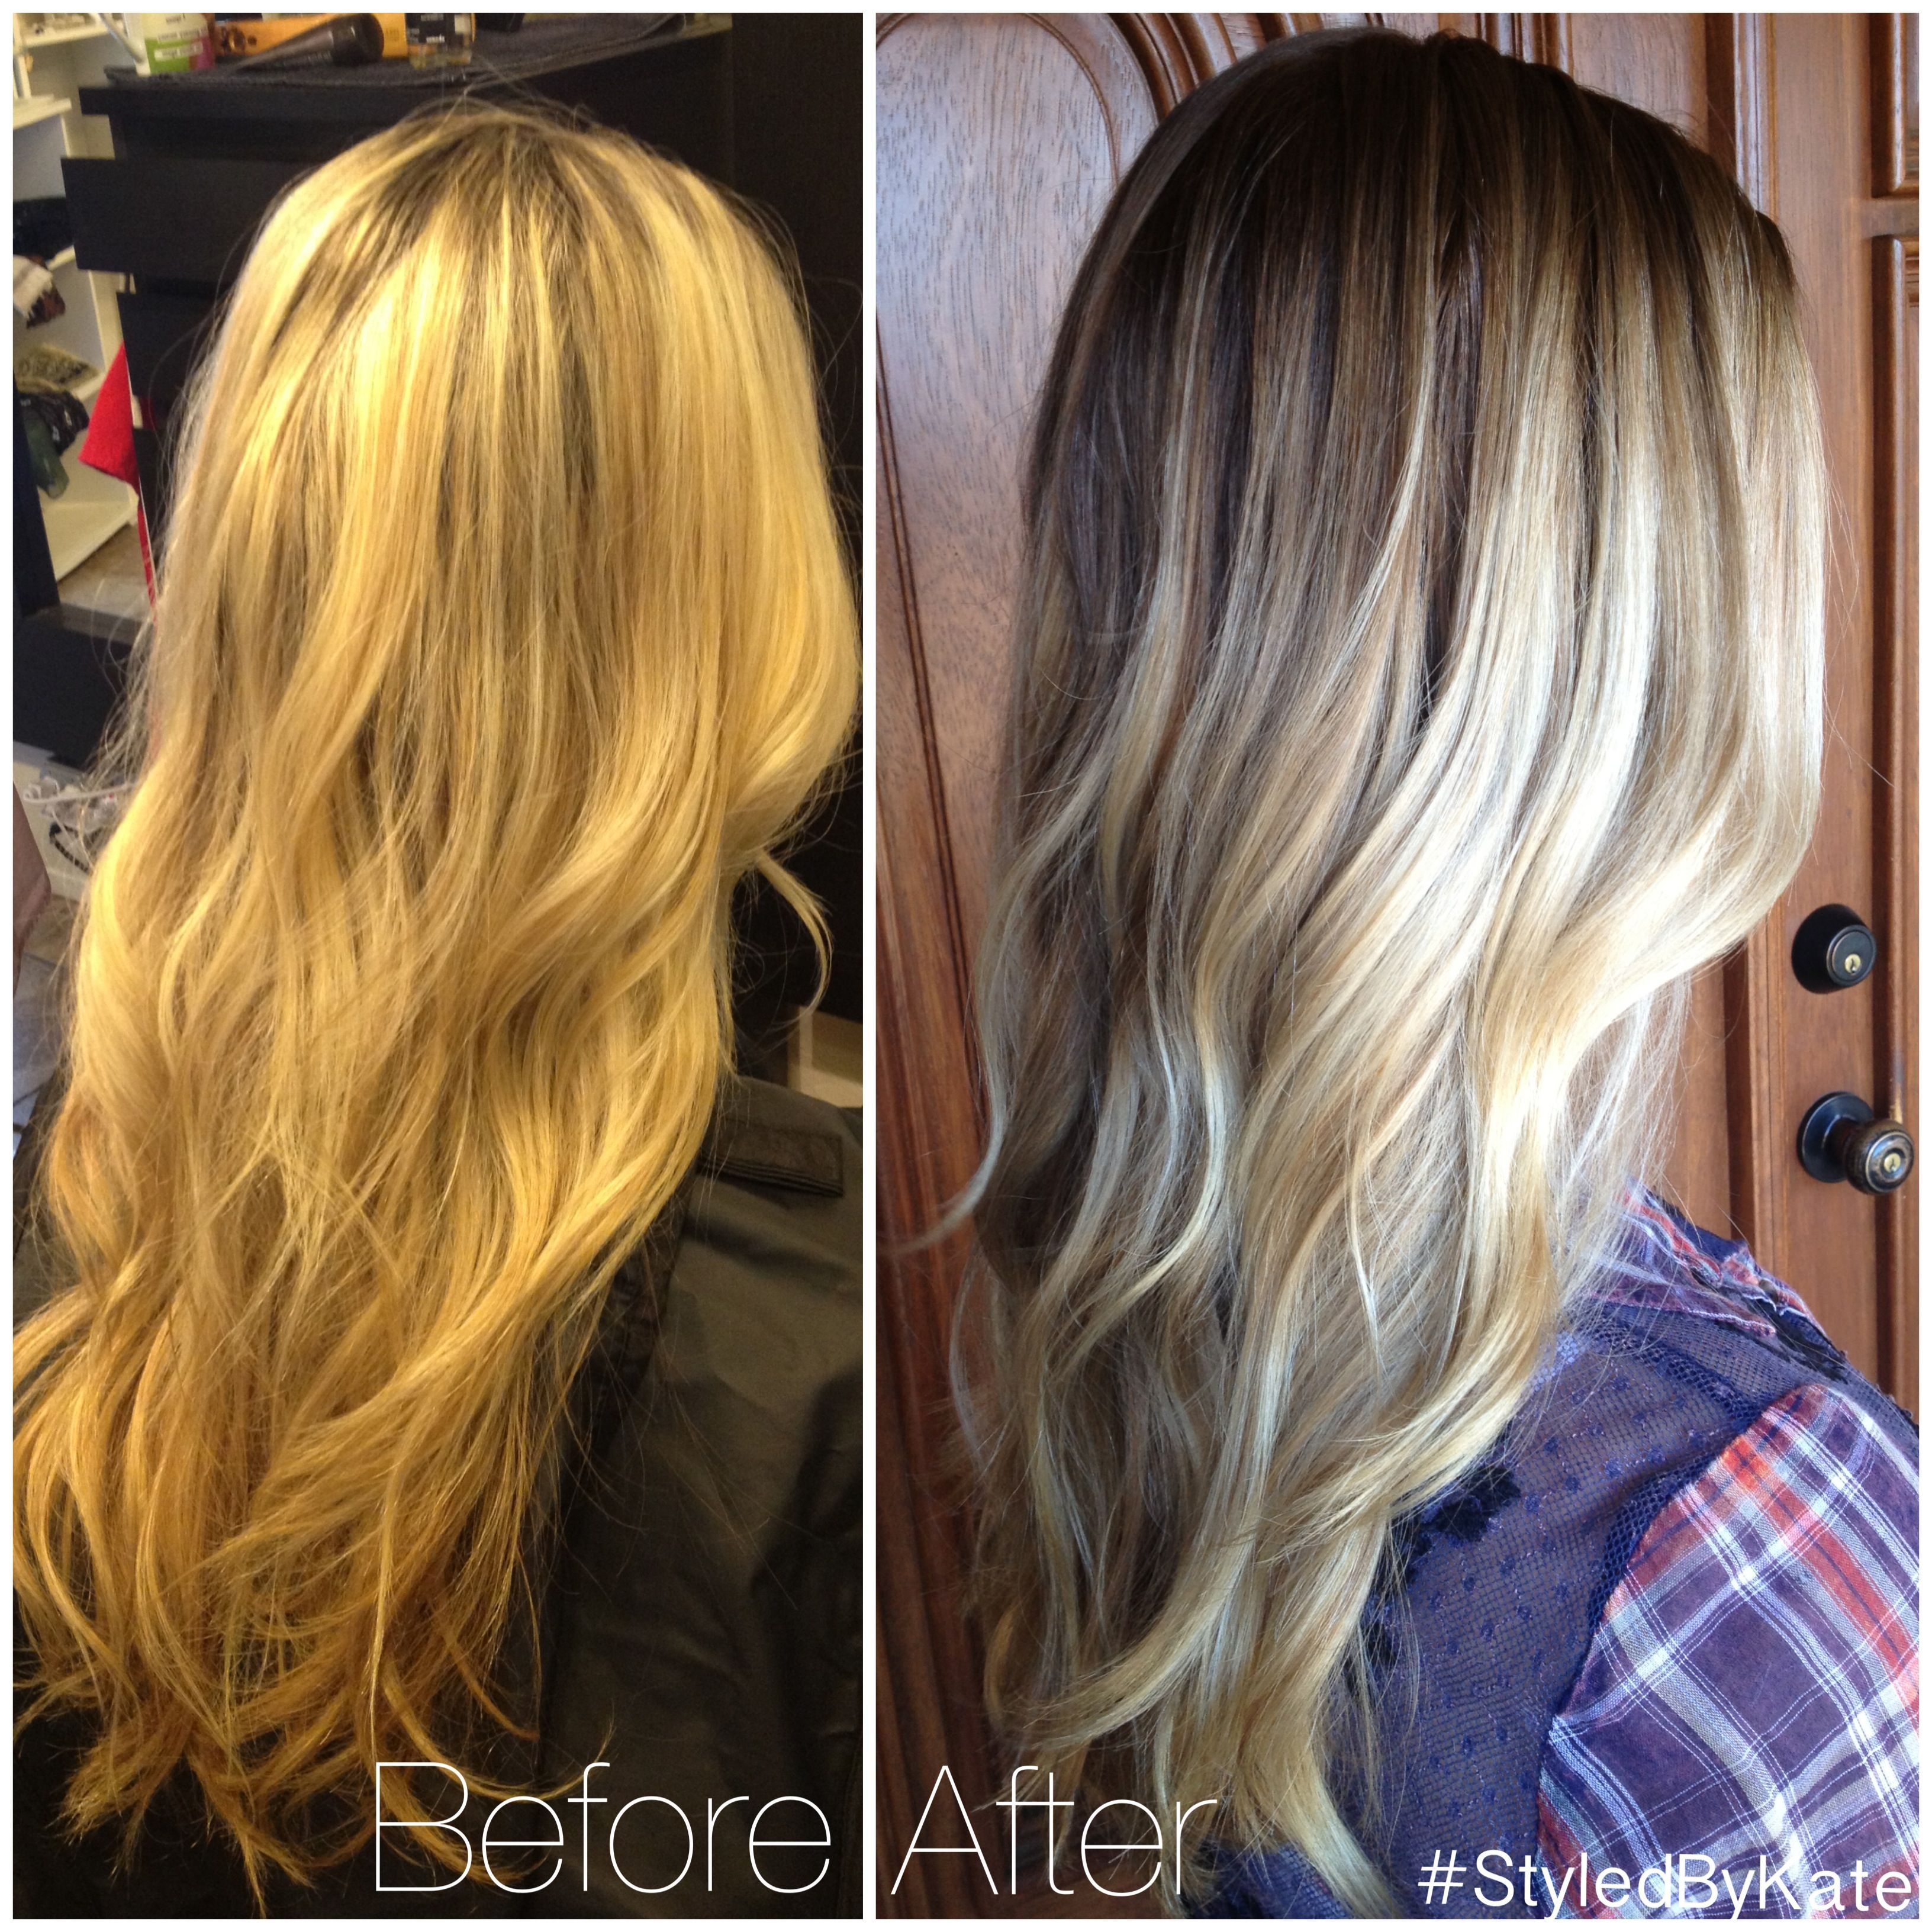 3 Before And After Grown Out Foiled Blonde Highlights To Natural Looking Balayage Streaks And A Low Maintenance Halo Root Styl Hair Hair Styles Hair Beauty